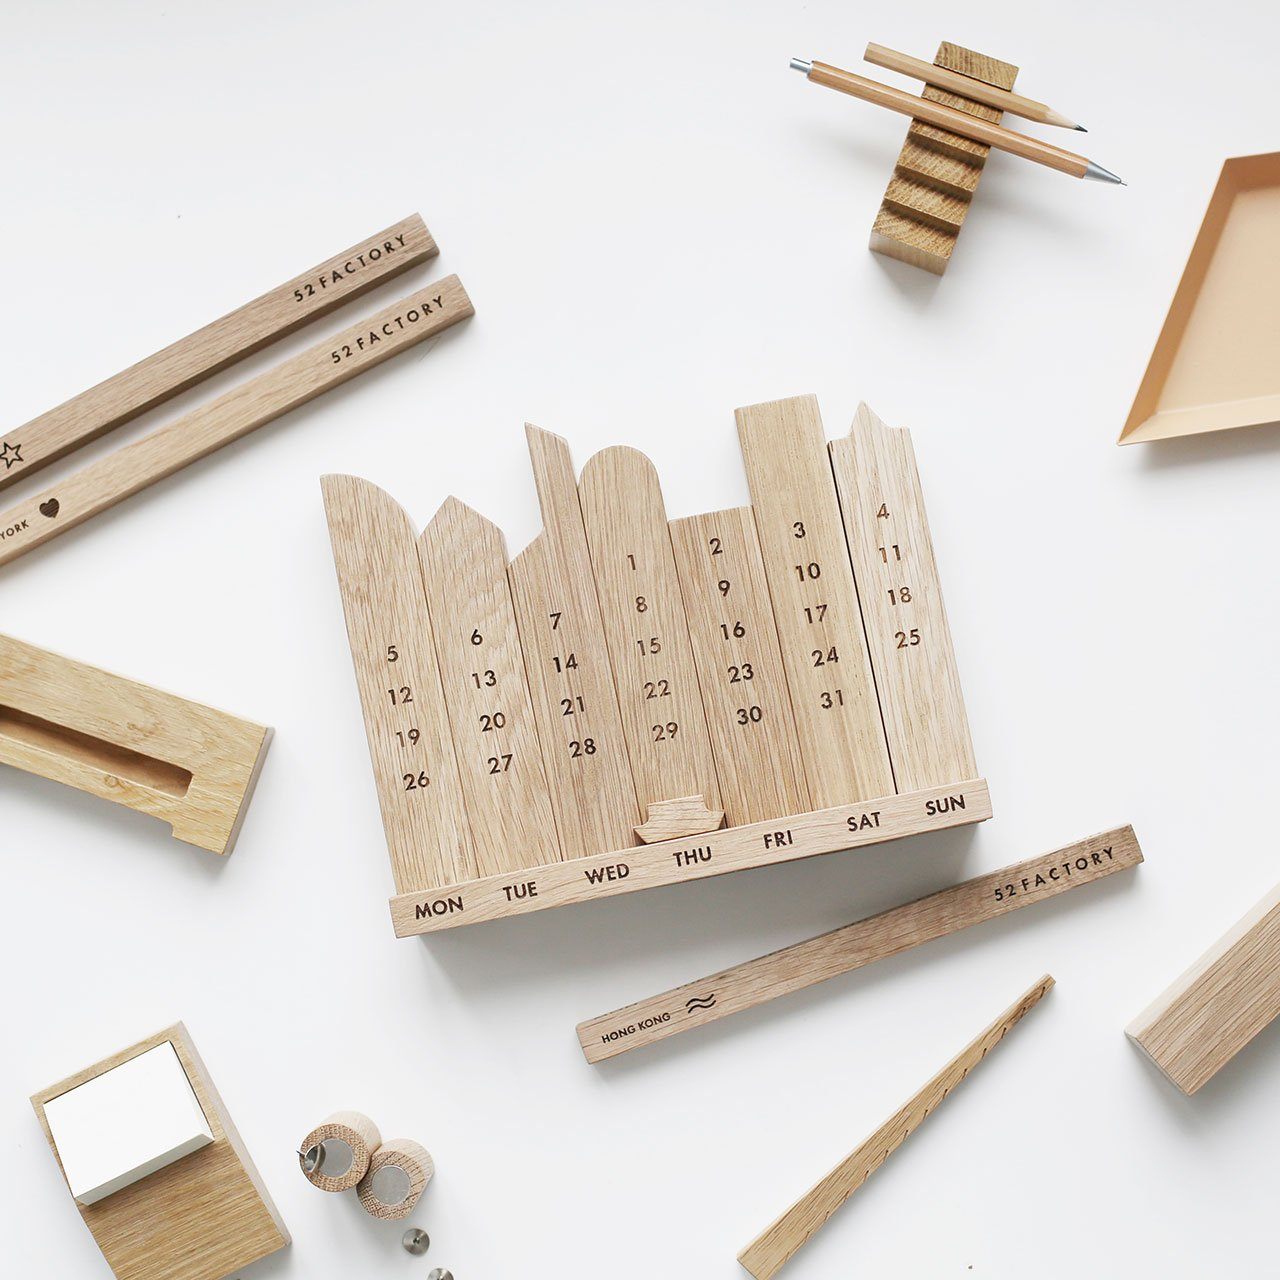 "Wooden calendar ""Hong Kong"" by 52 FACTORY. Photo courtesy 52 FACTORY."